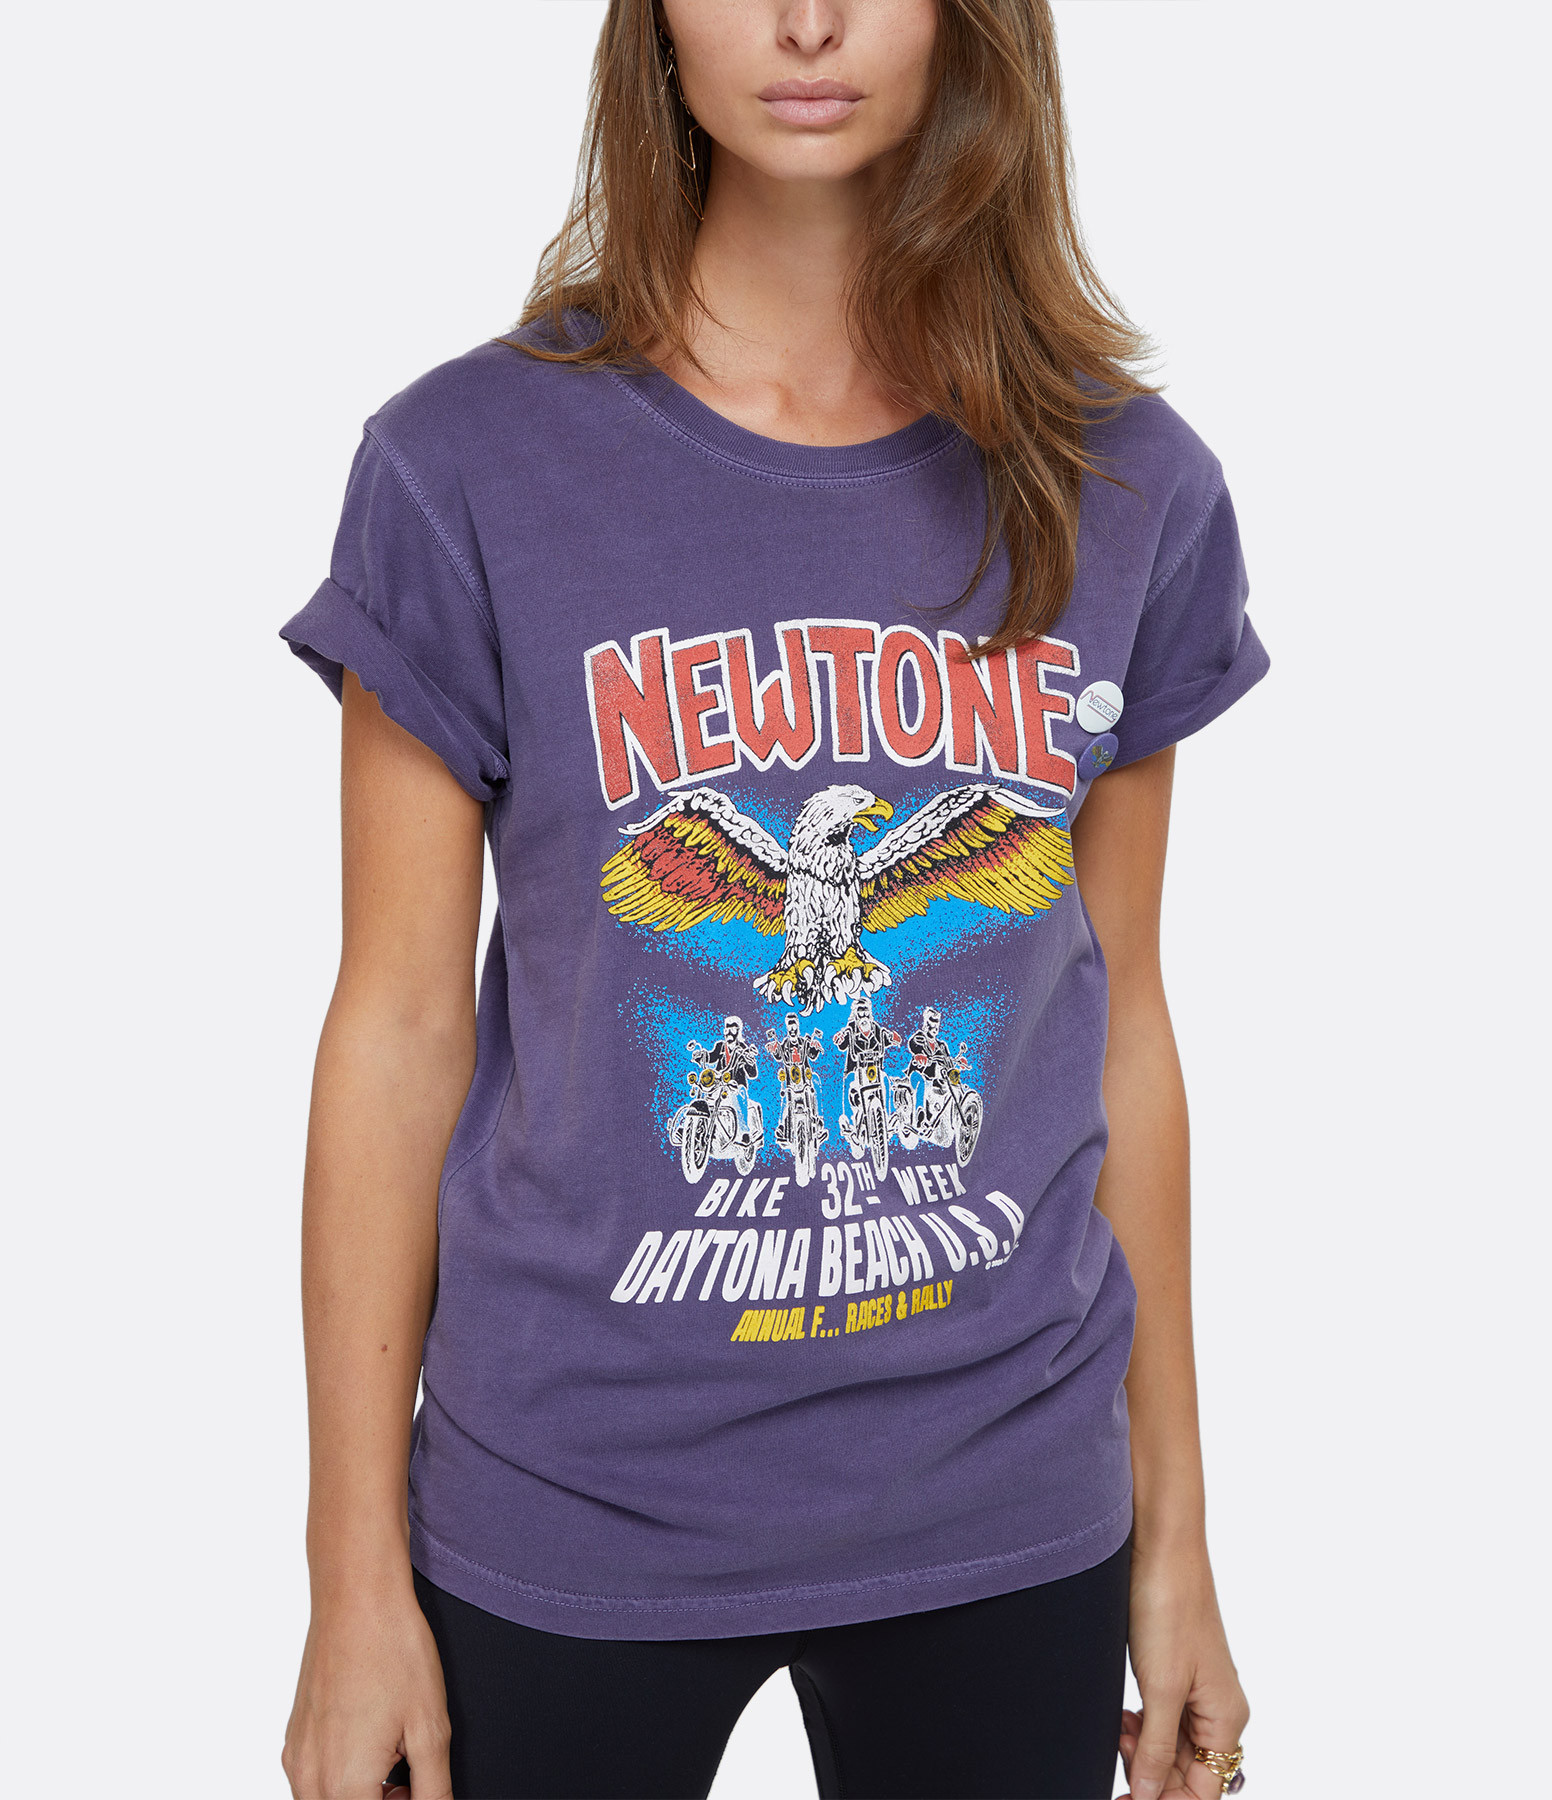 NEWTONE - Tee-shirt Convention Coton Violet Grappe